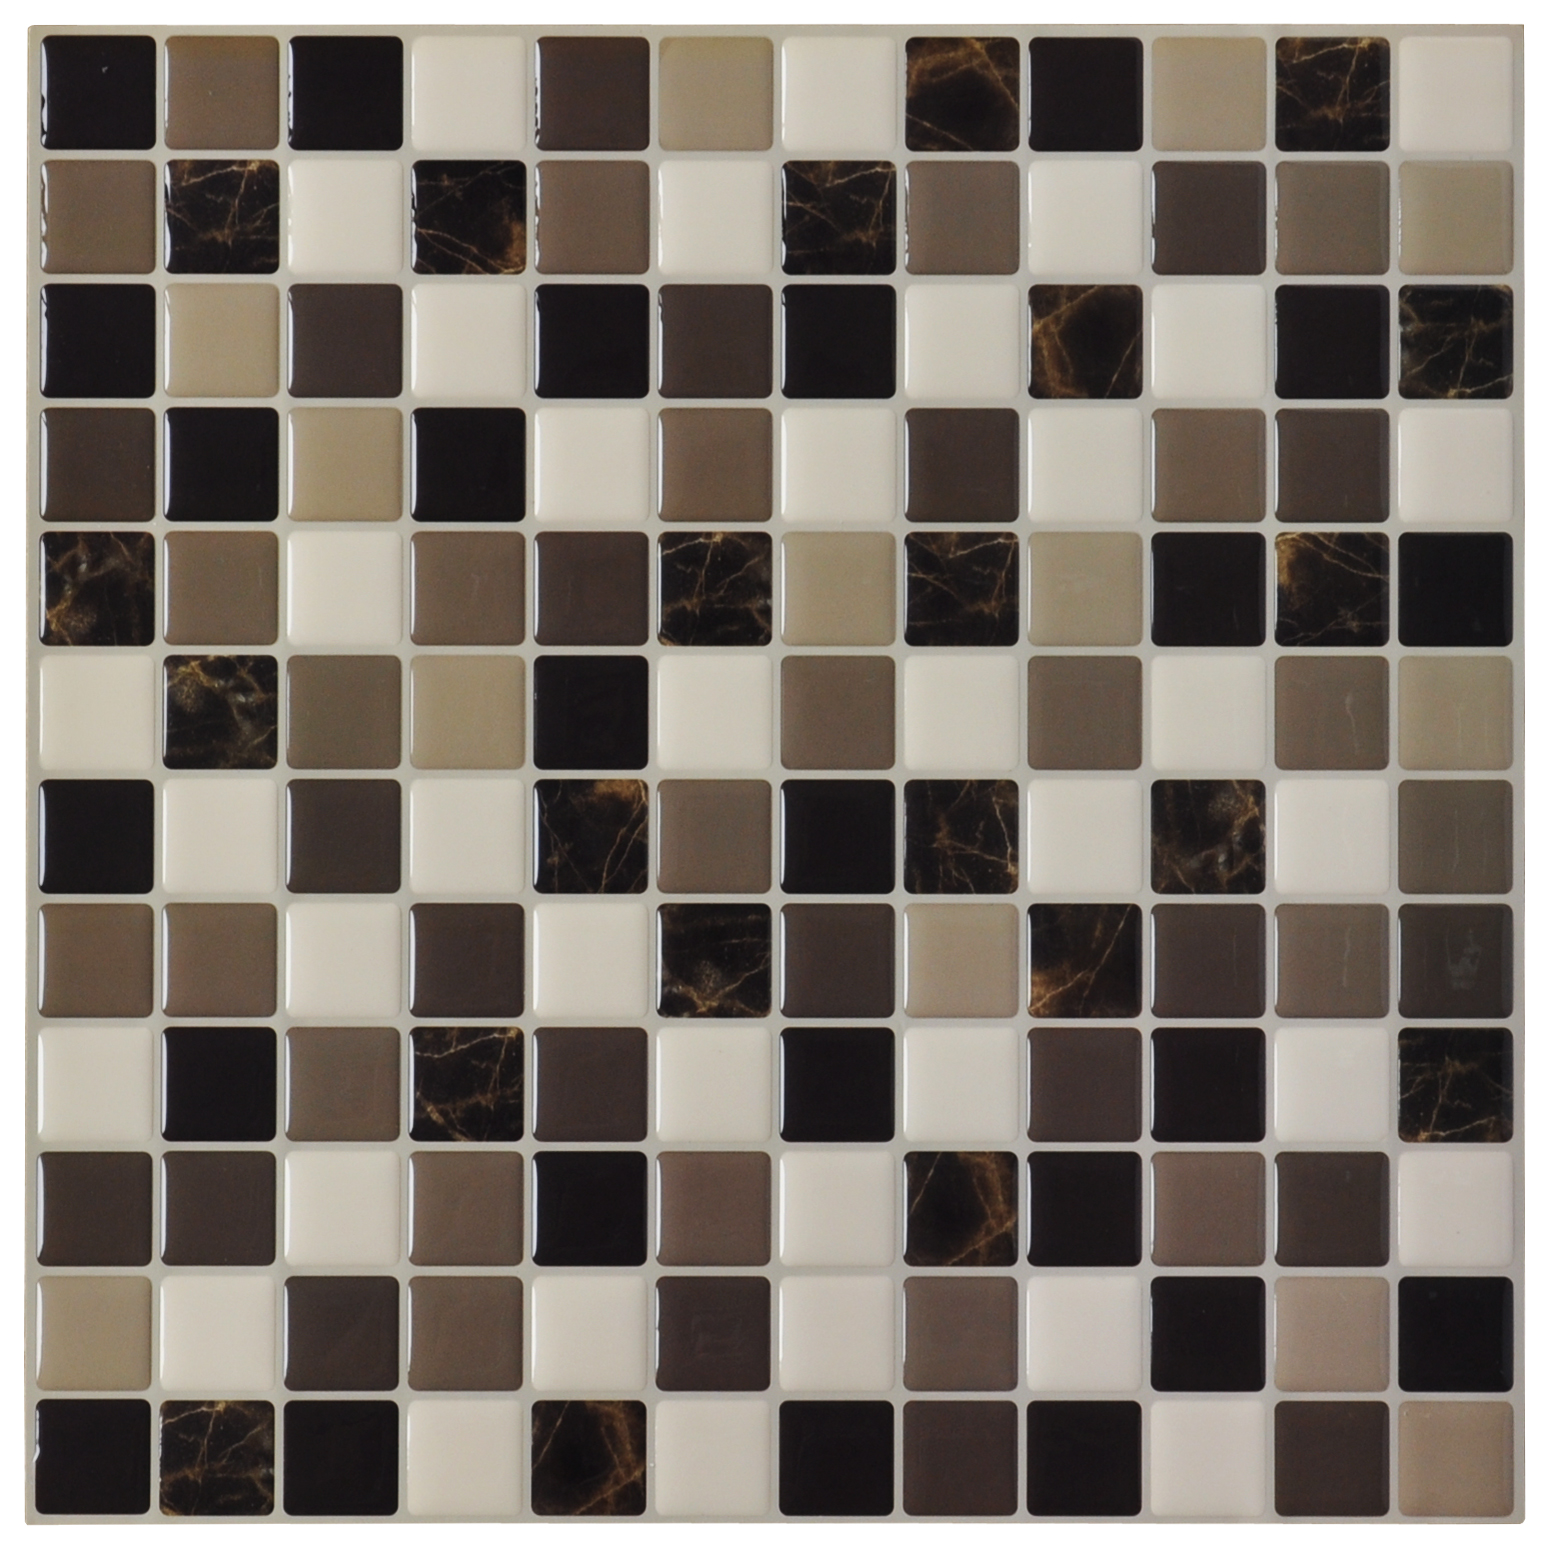 Vinyl tile backsplash adhesive wall covering for kitchen bathroom diy vinyl tile backsplash adhesive wall covering for kitchen bathroom 6 tiles 58 sqft dailygadgetfo Image collections